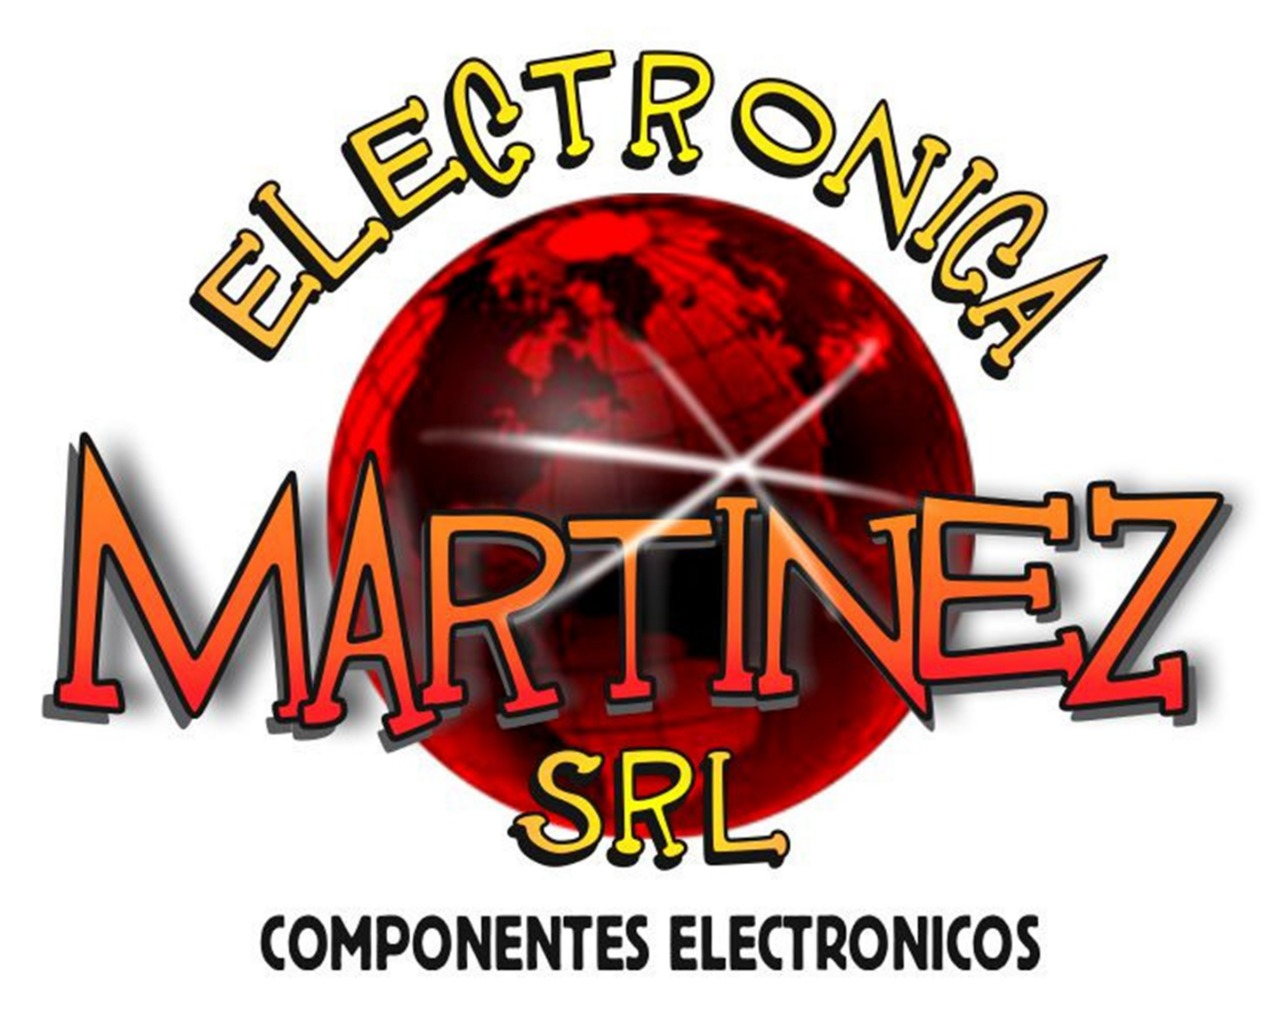 Electronica Martinez